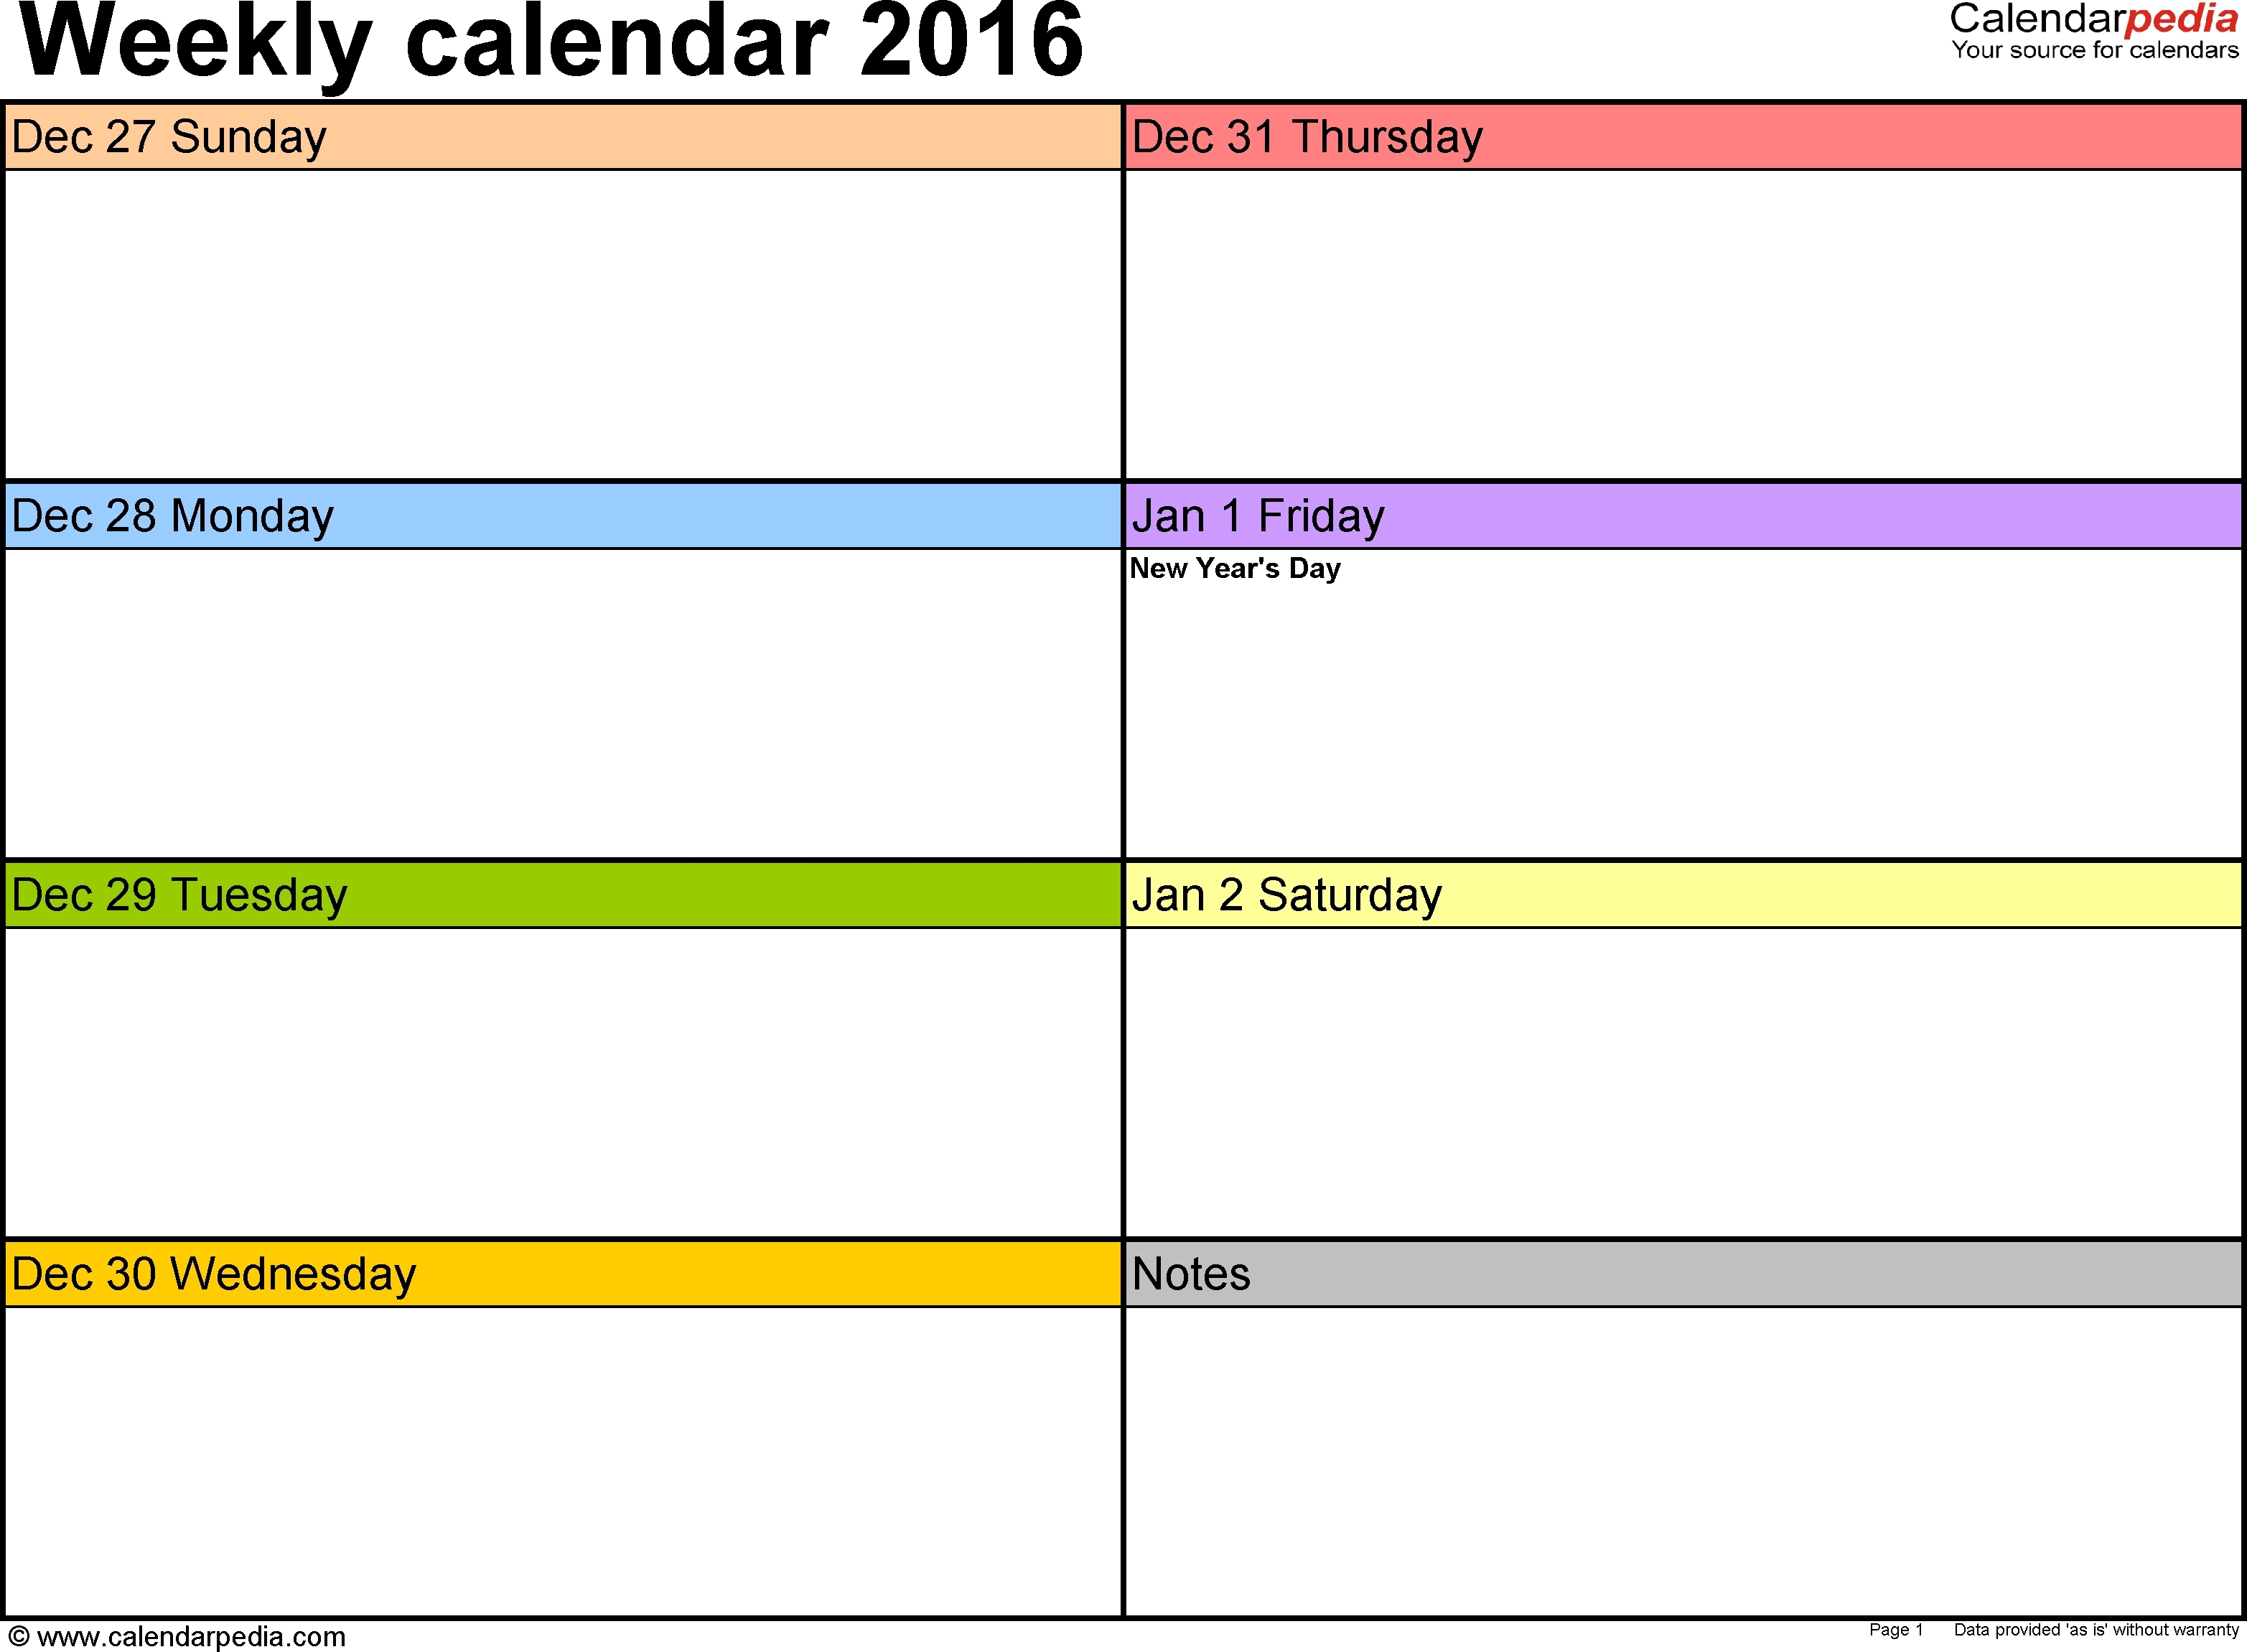 Printable Blank Weekly Calendars Templates - Radiodignidad pertaining to Calendar Template With Time Slots